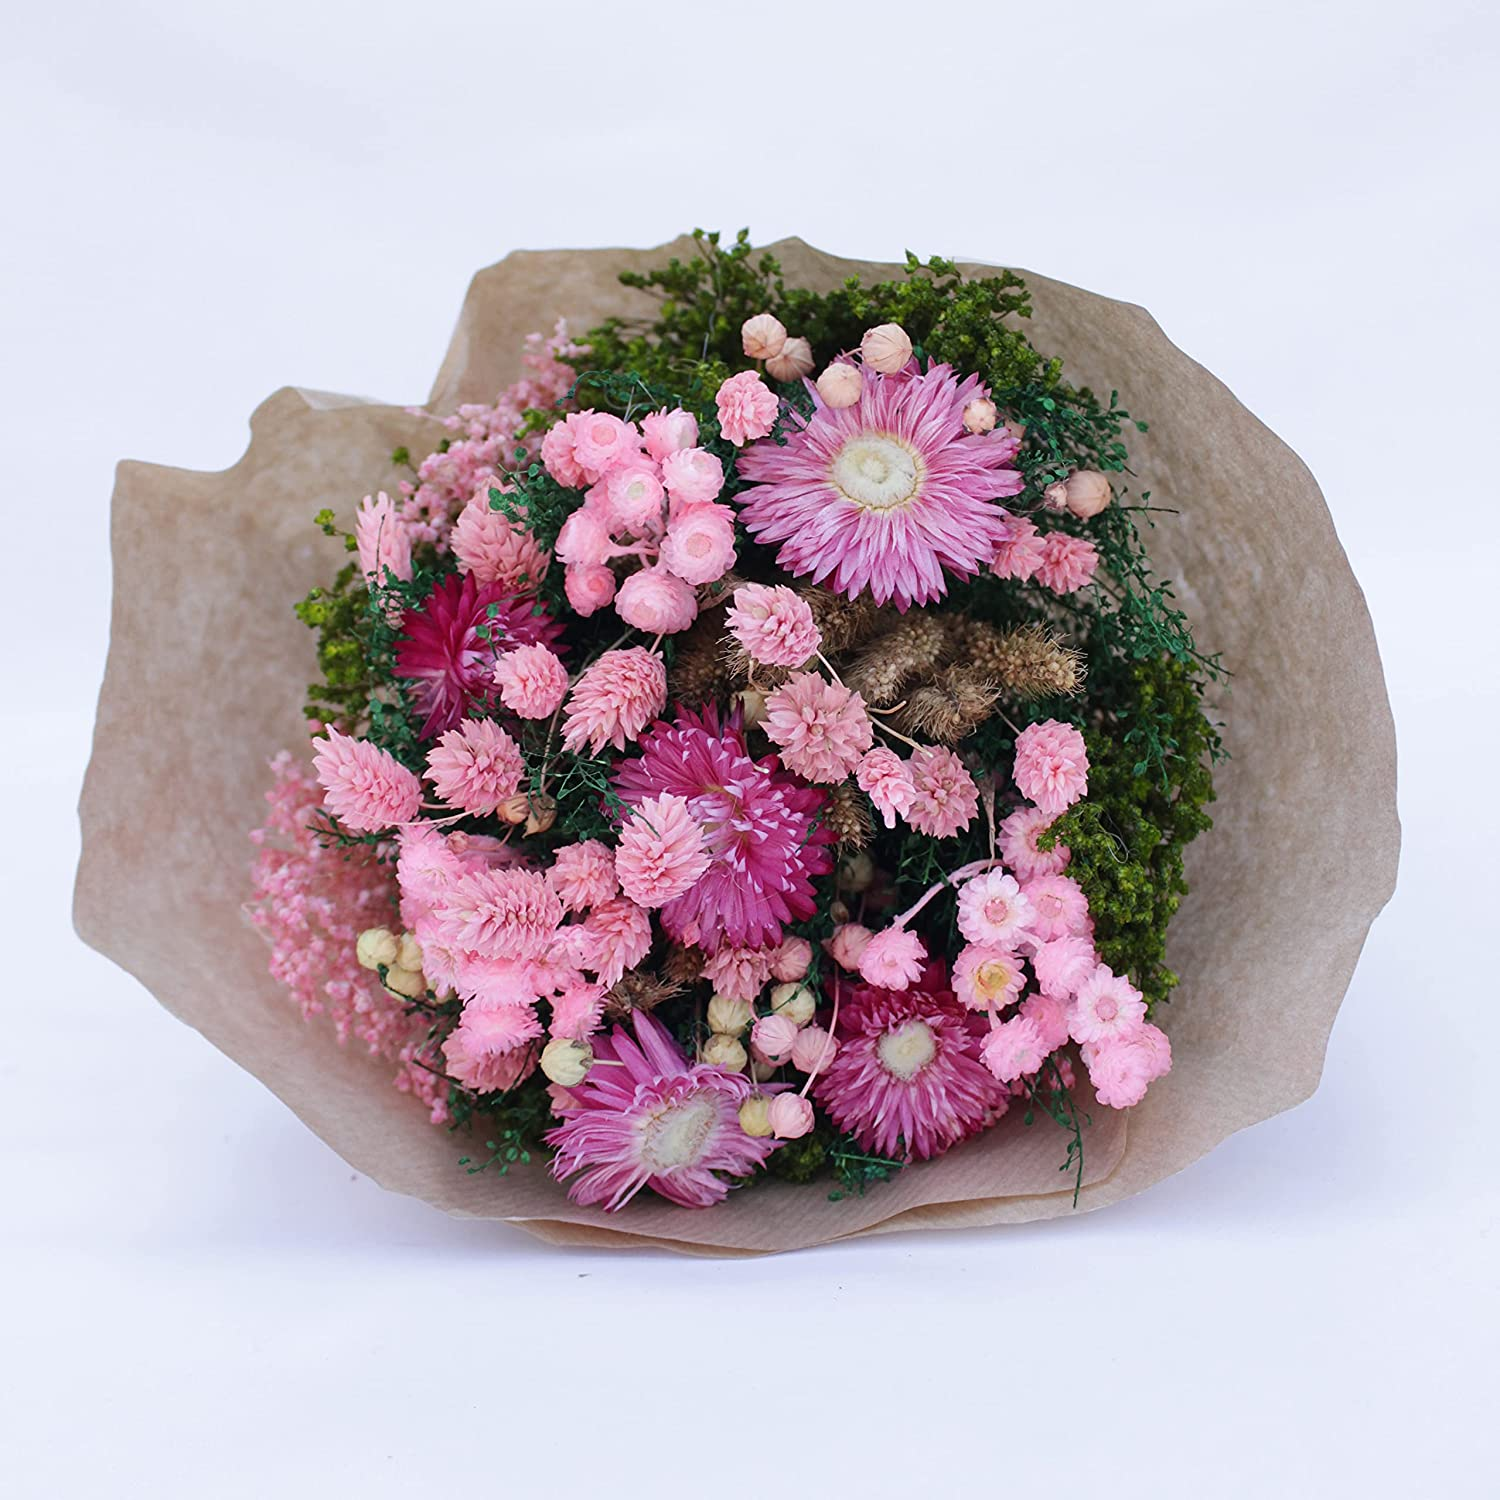 Bundle of Joy Bouquet Air-dried Bunch Preserved Popular shop is the lowest excellence price challenge Wild P Flower